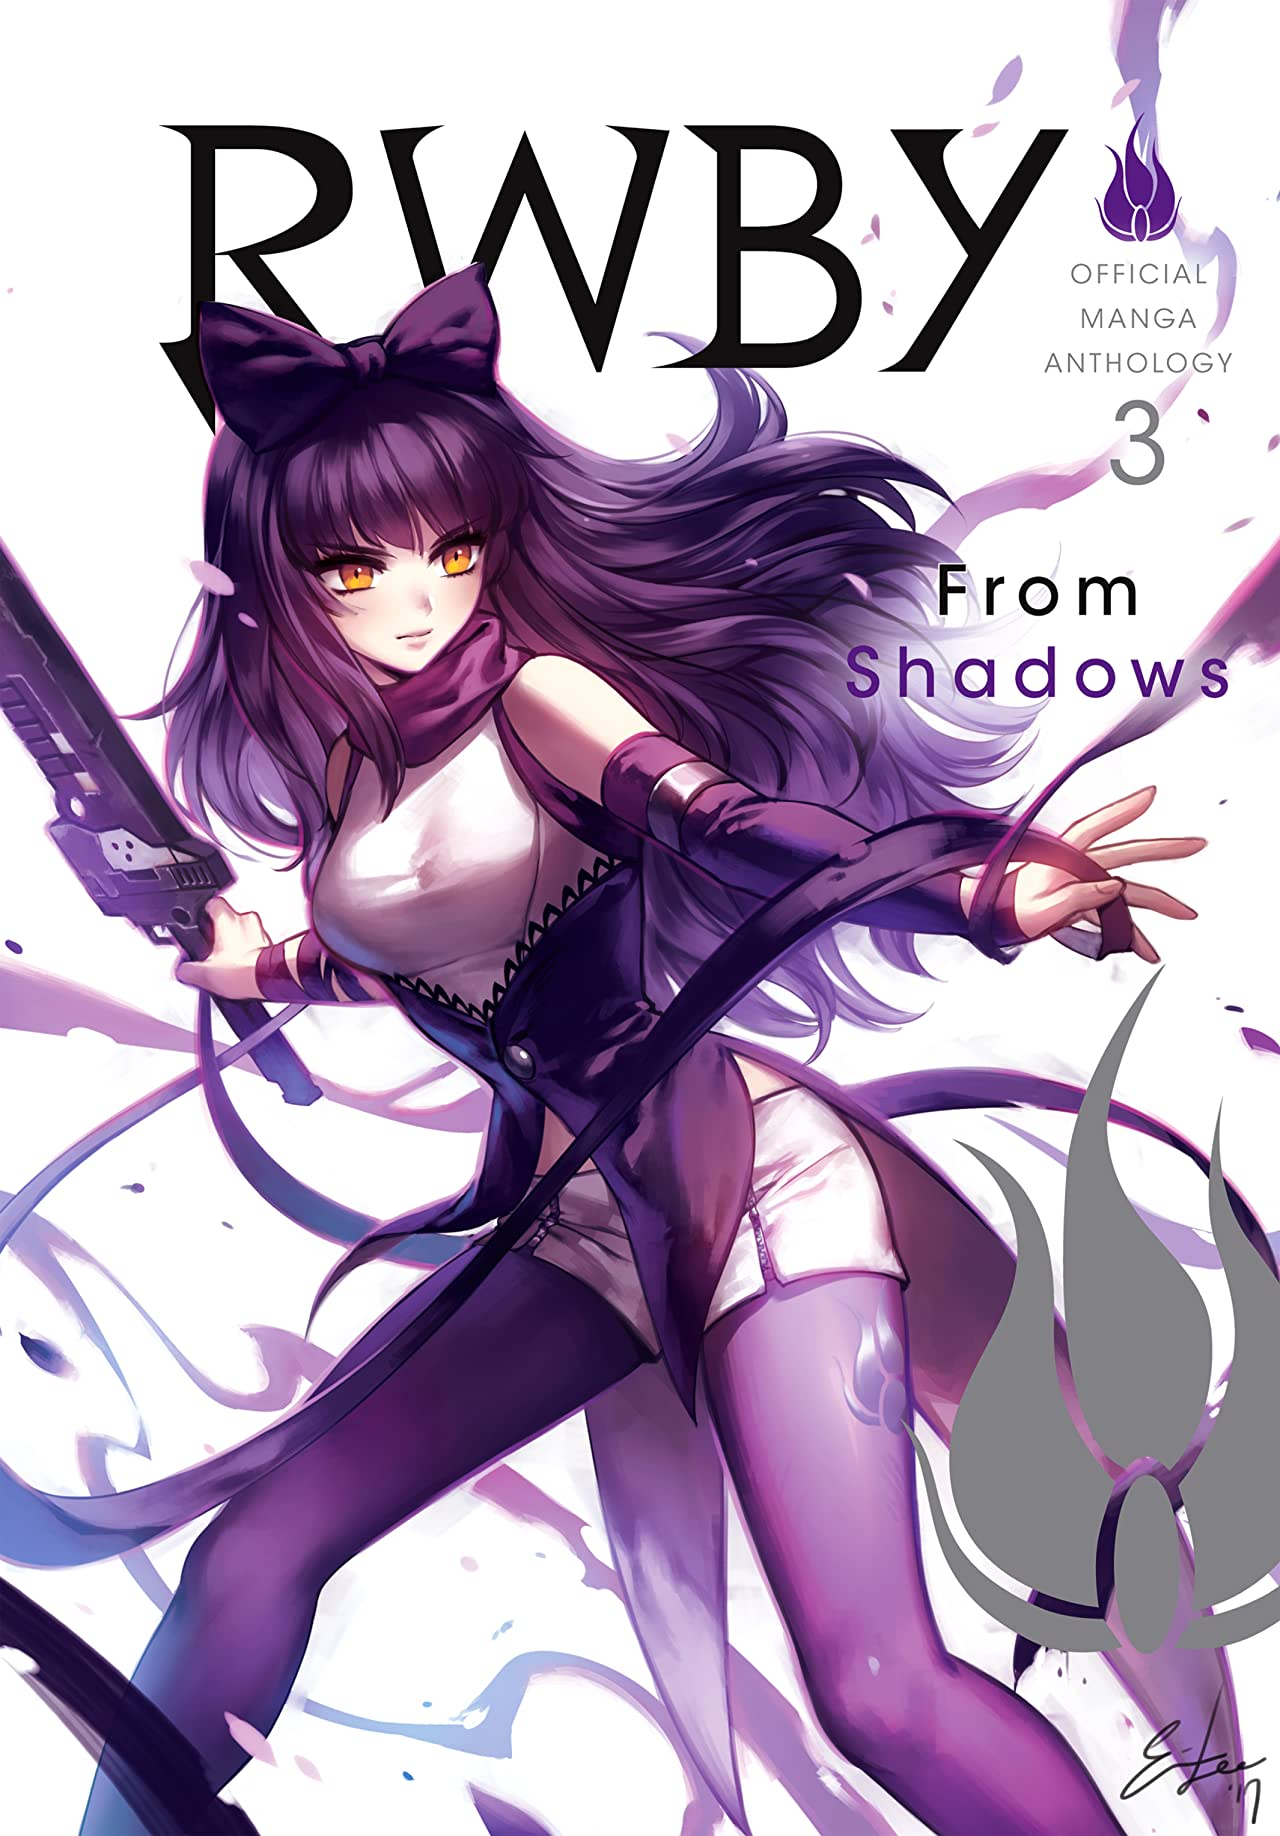 RWBY Official Manga Anthology: From Shadows Vol. 3